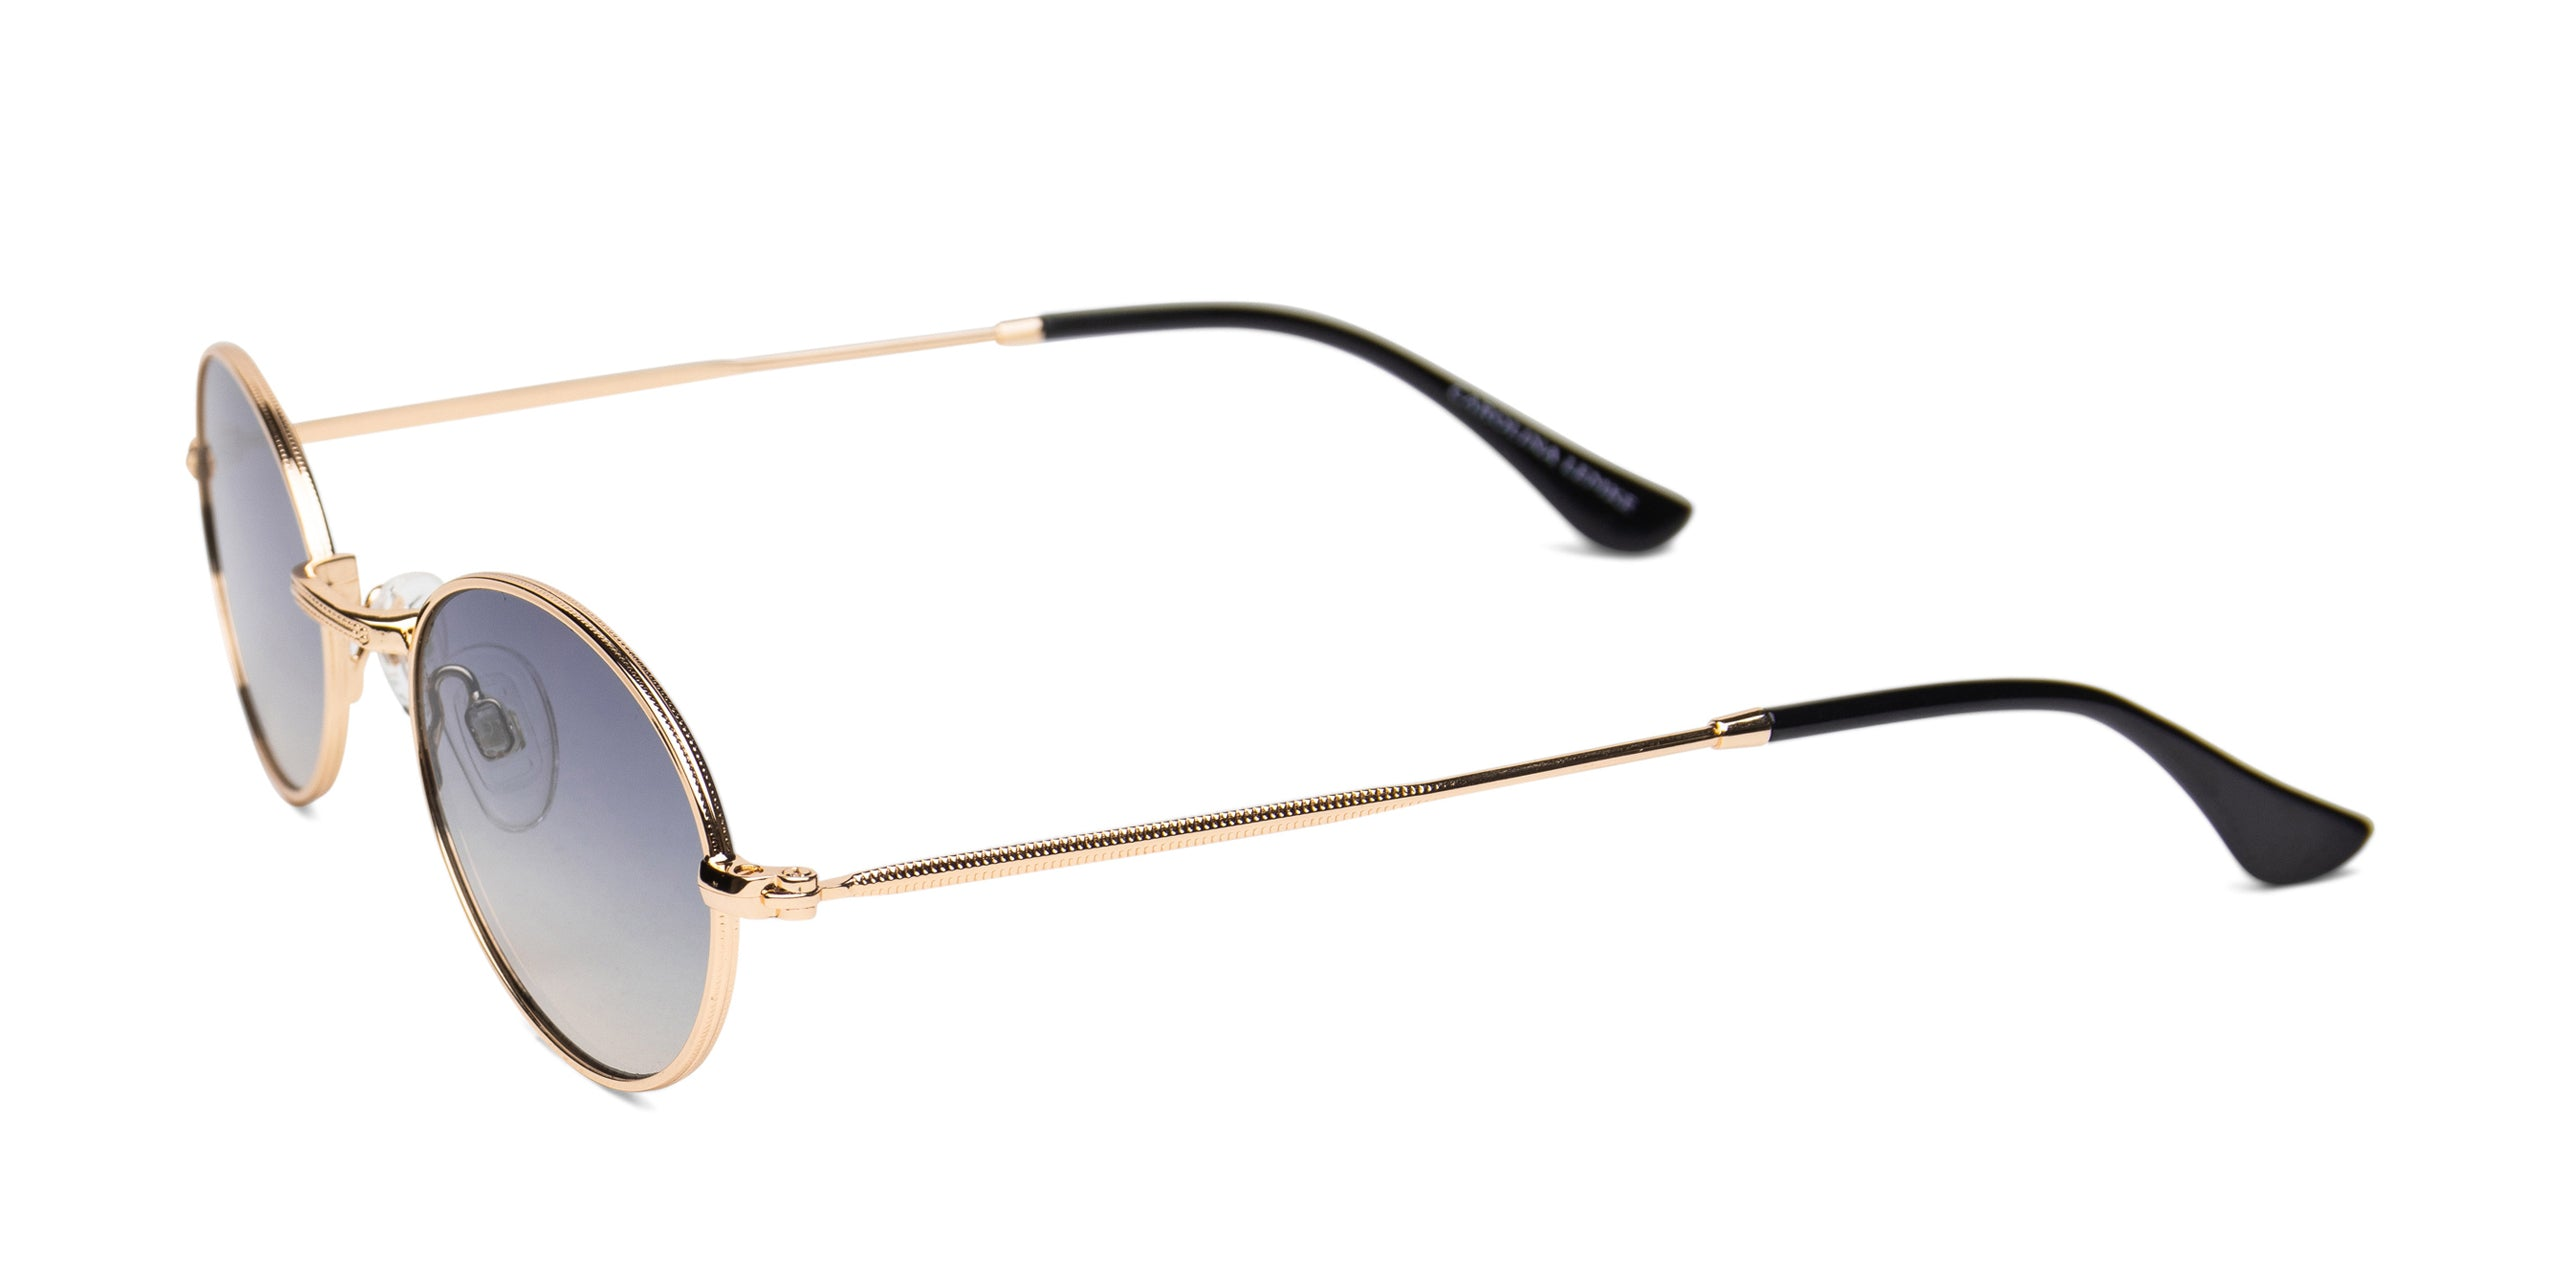 FRAME Shiny Light Gold LENS Gradient Yellow